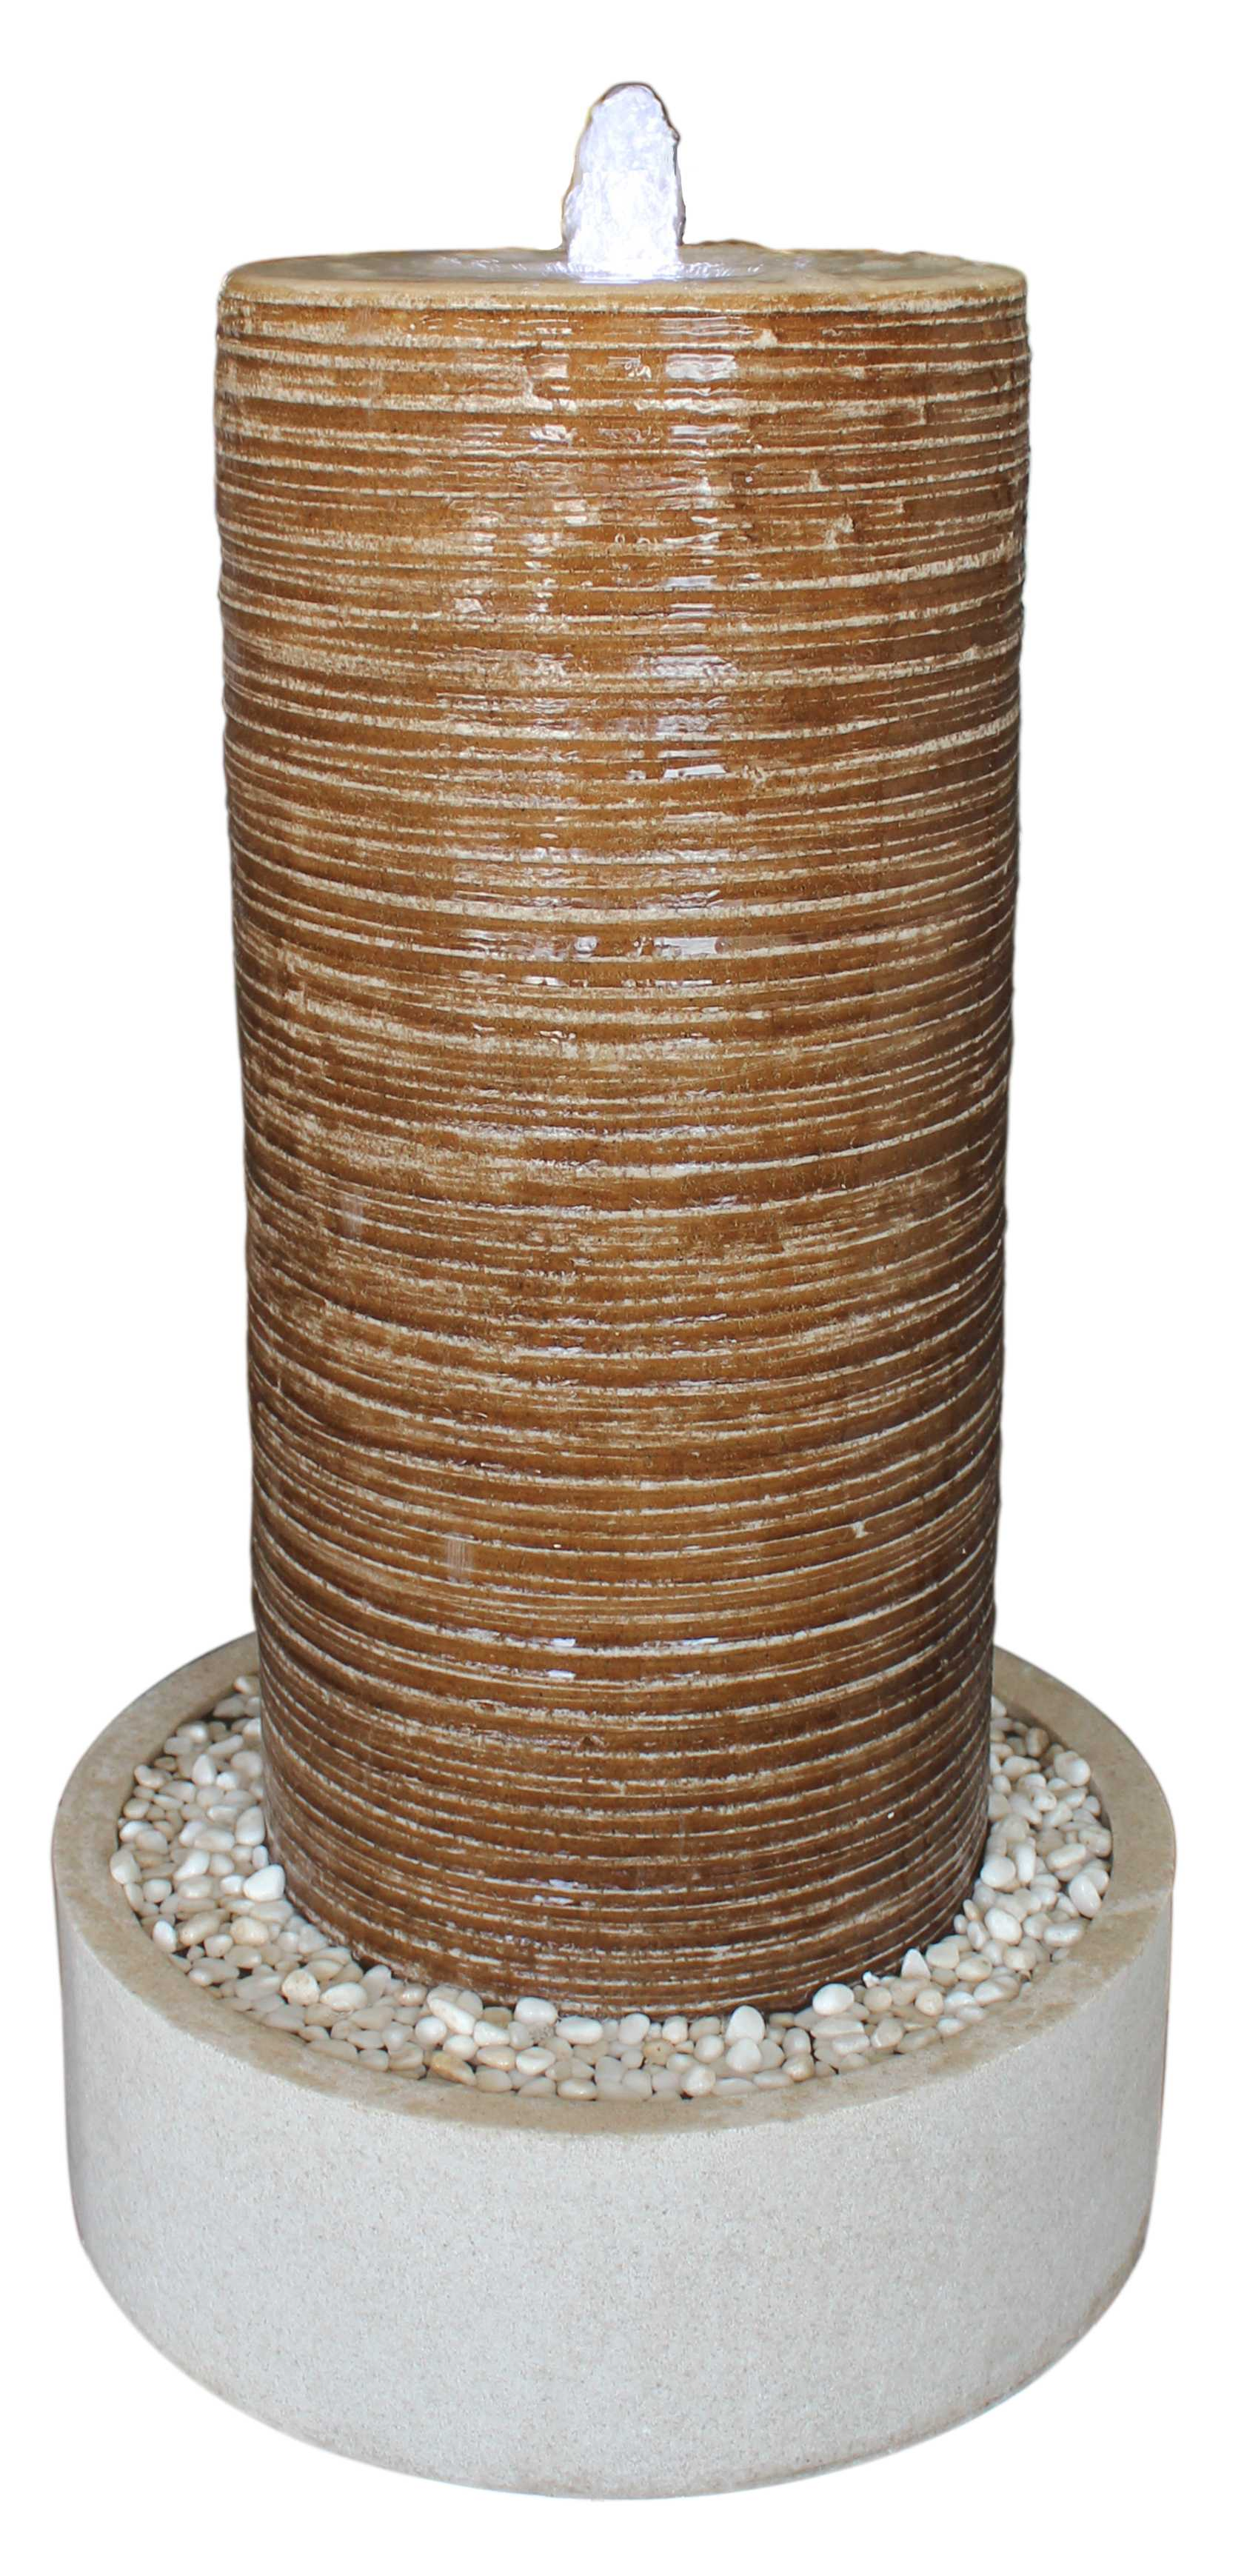 "1"" x 19"" x 32"" Tan Ribbed Column Round Base With Pebbles  Indoor Outdoor Fountain"